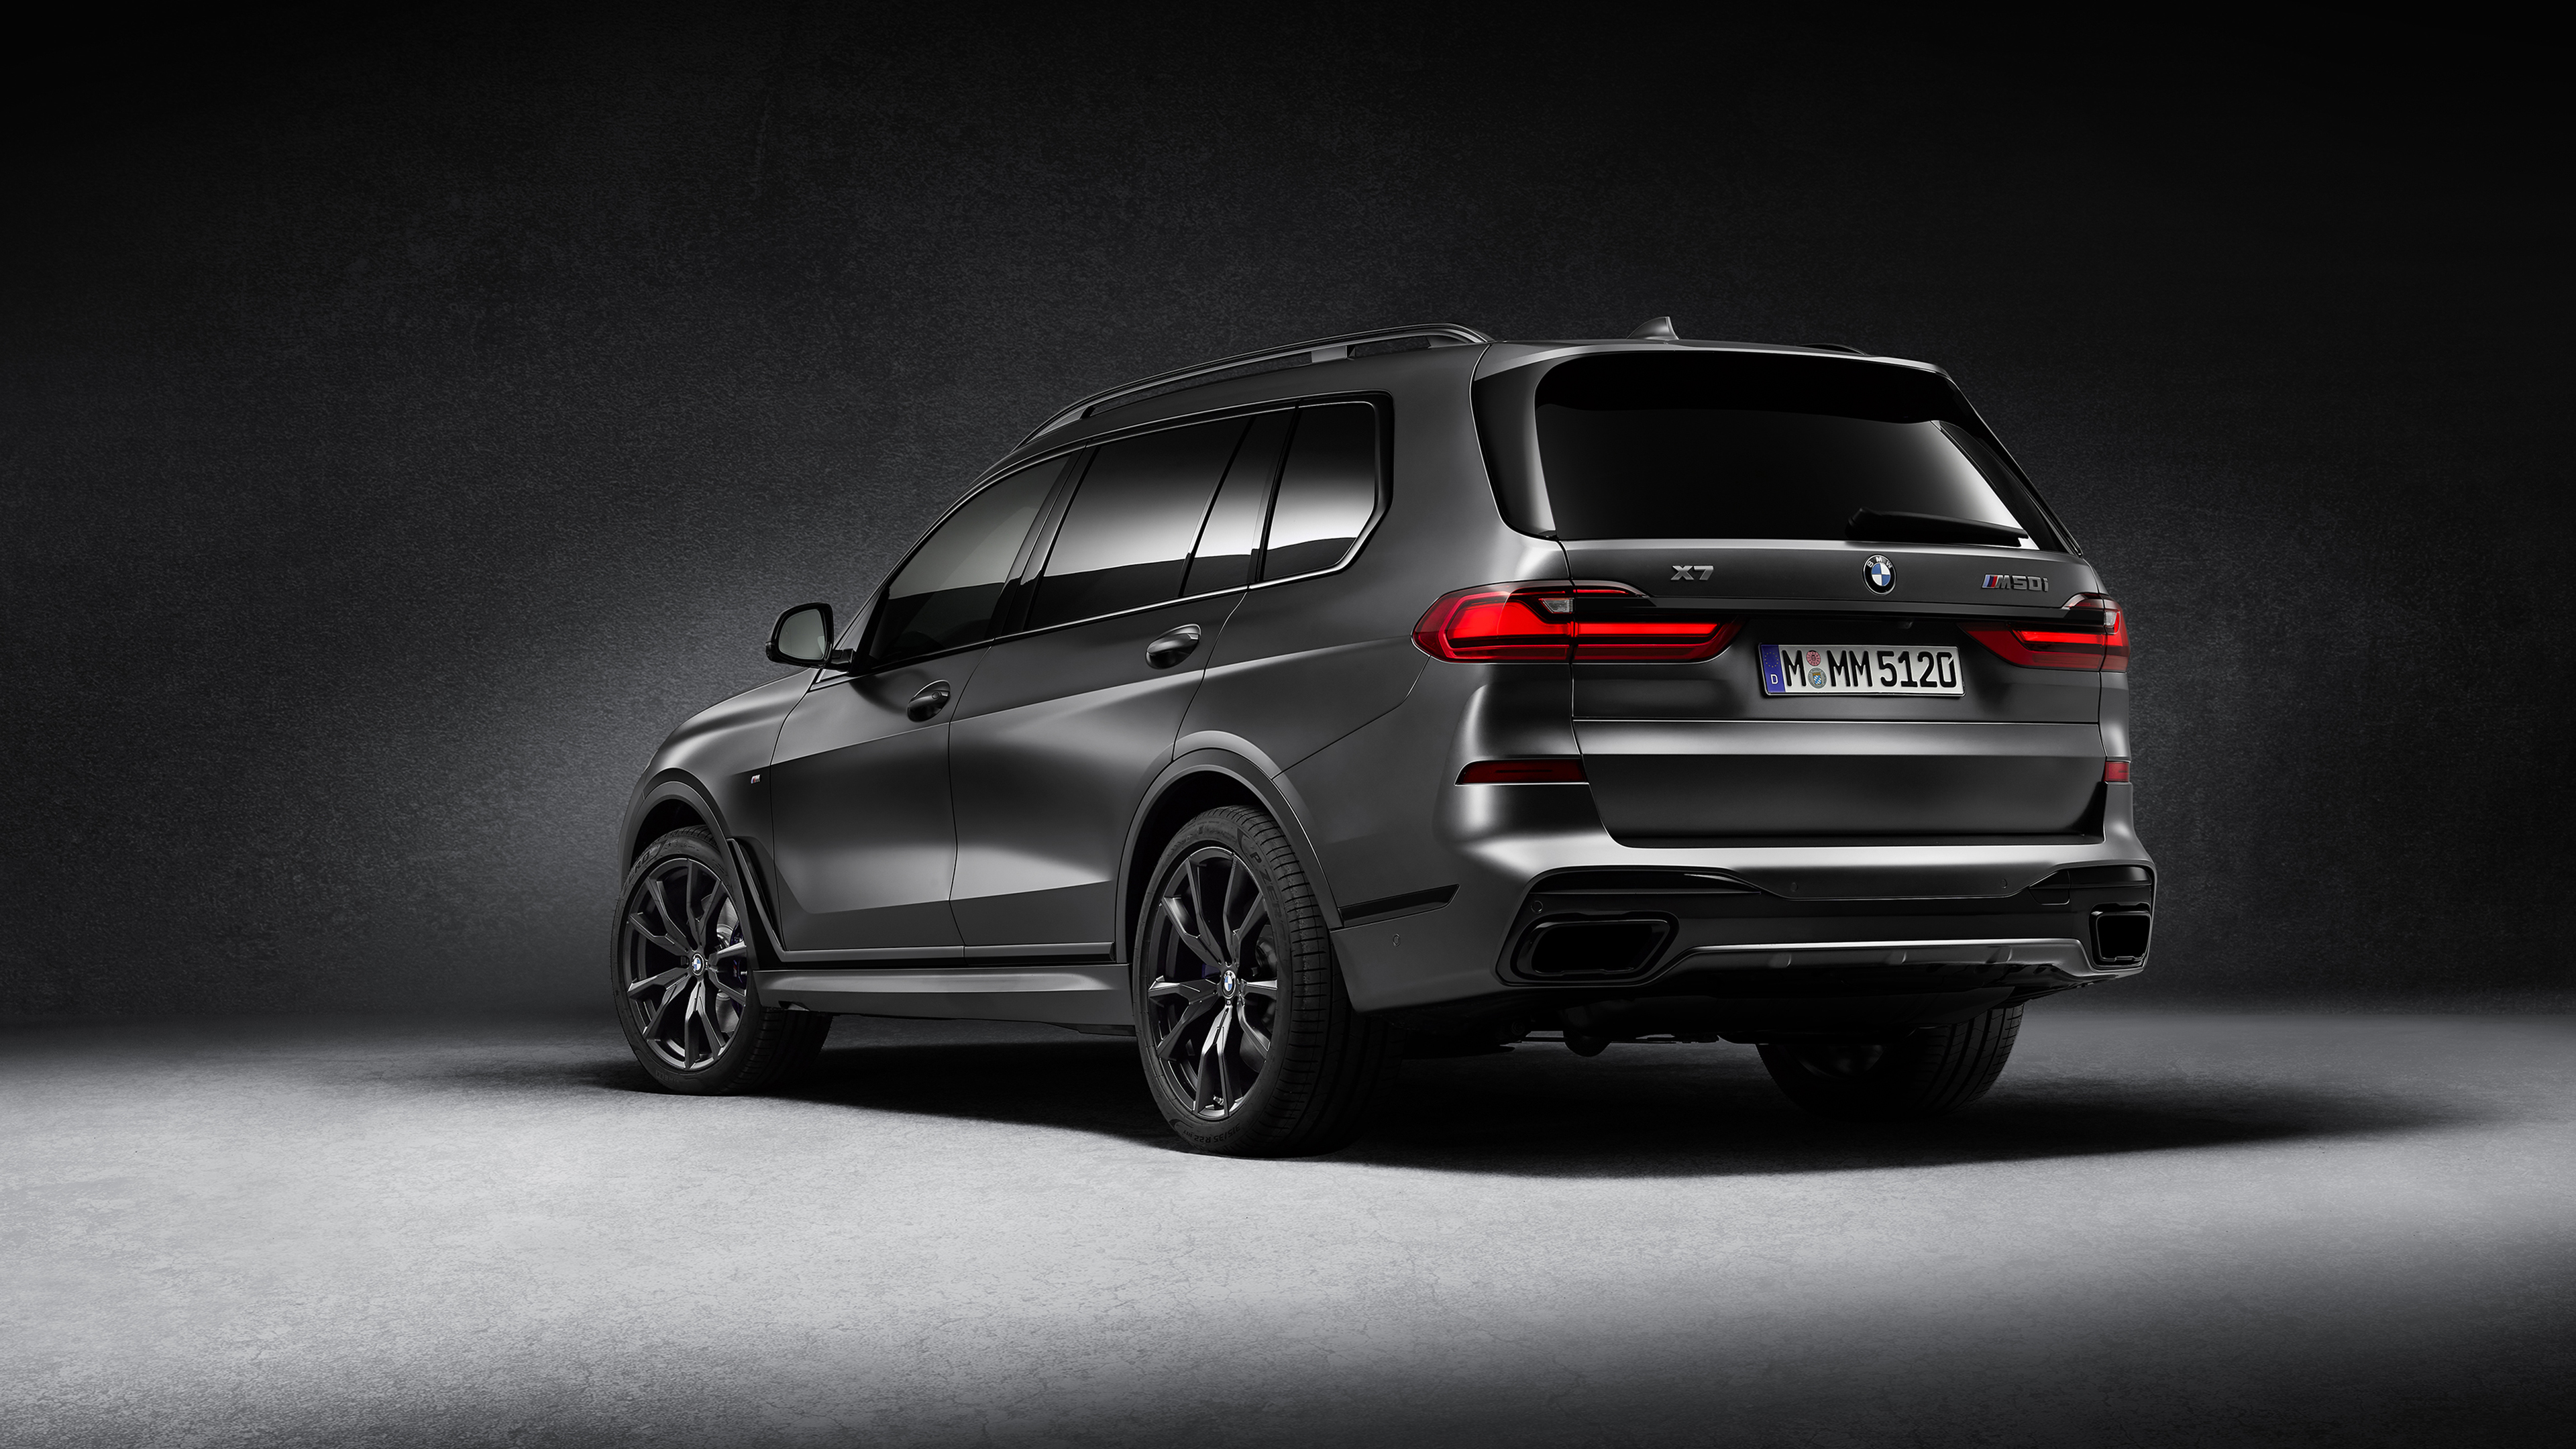 Bmw X7 M50i Edition Dark Shadow 2020 4k 2 Wallpaper Hd Car Wallpapers Id 15371